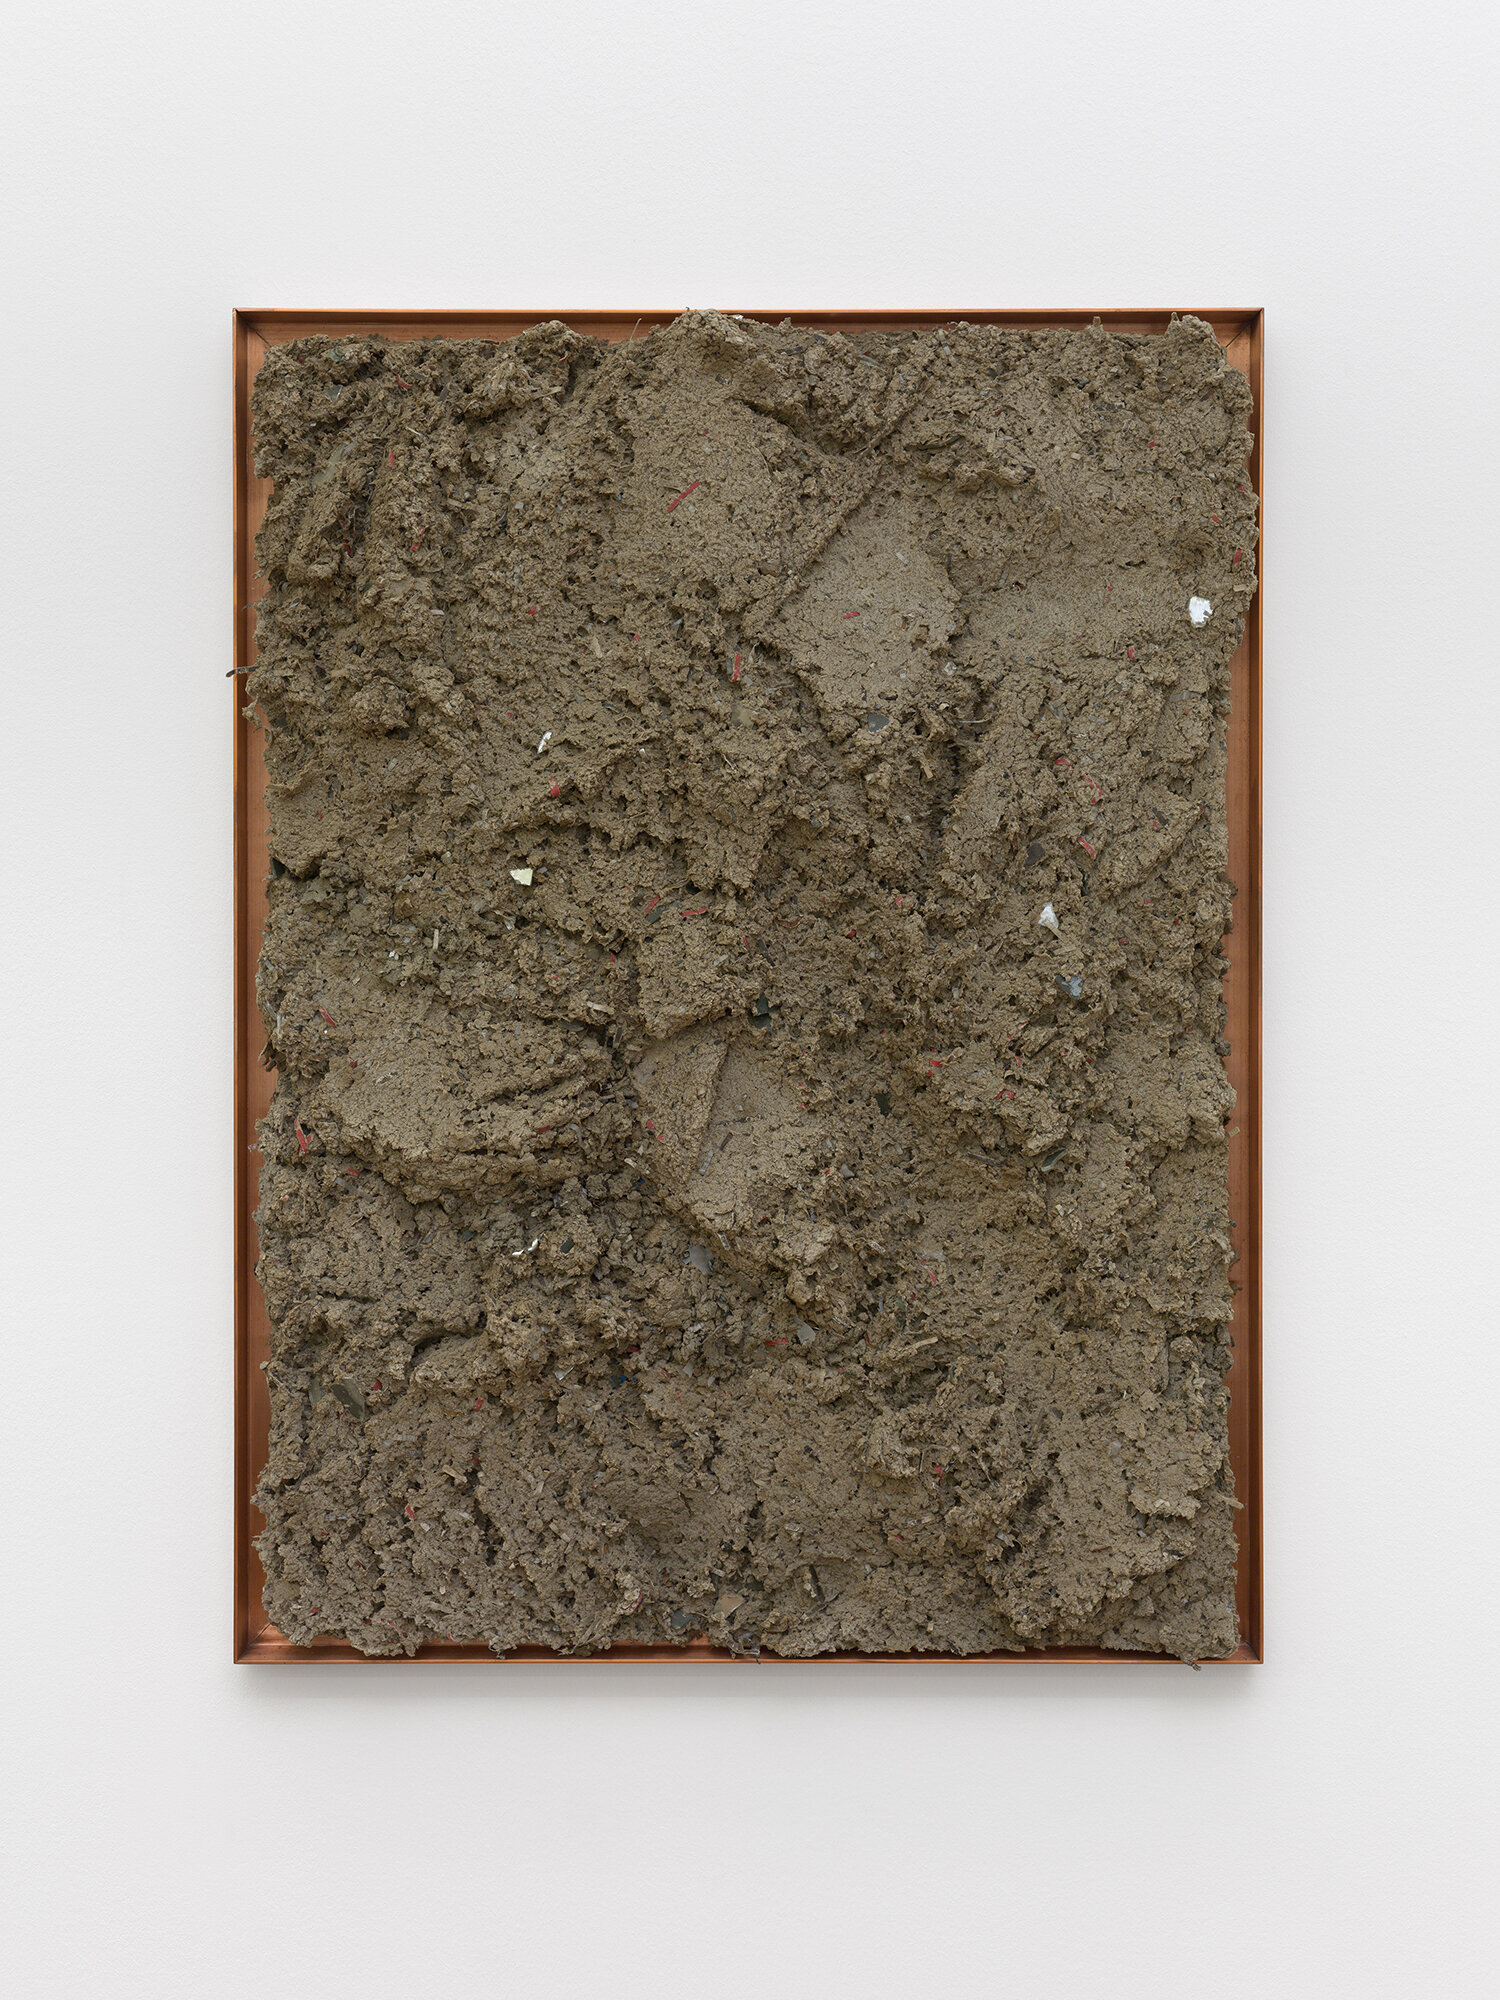 Selected Works (2012–2013/September 5, 2012–March 12, 2013)    2014   Black and white fiber based photographic paper, color photographic paper, and archival inkjet papers  40 x 30 inches   Musée d'art moderne et contemporain, 2019